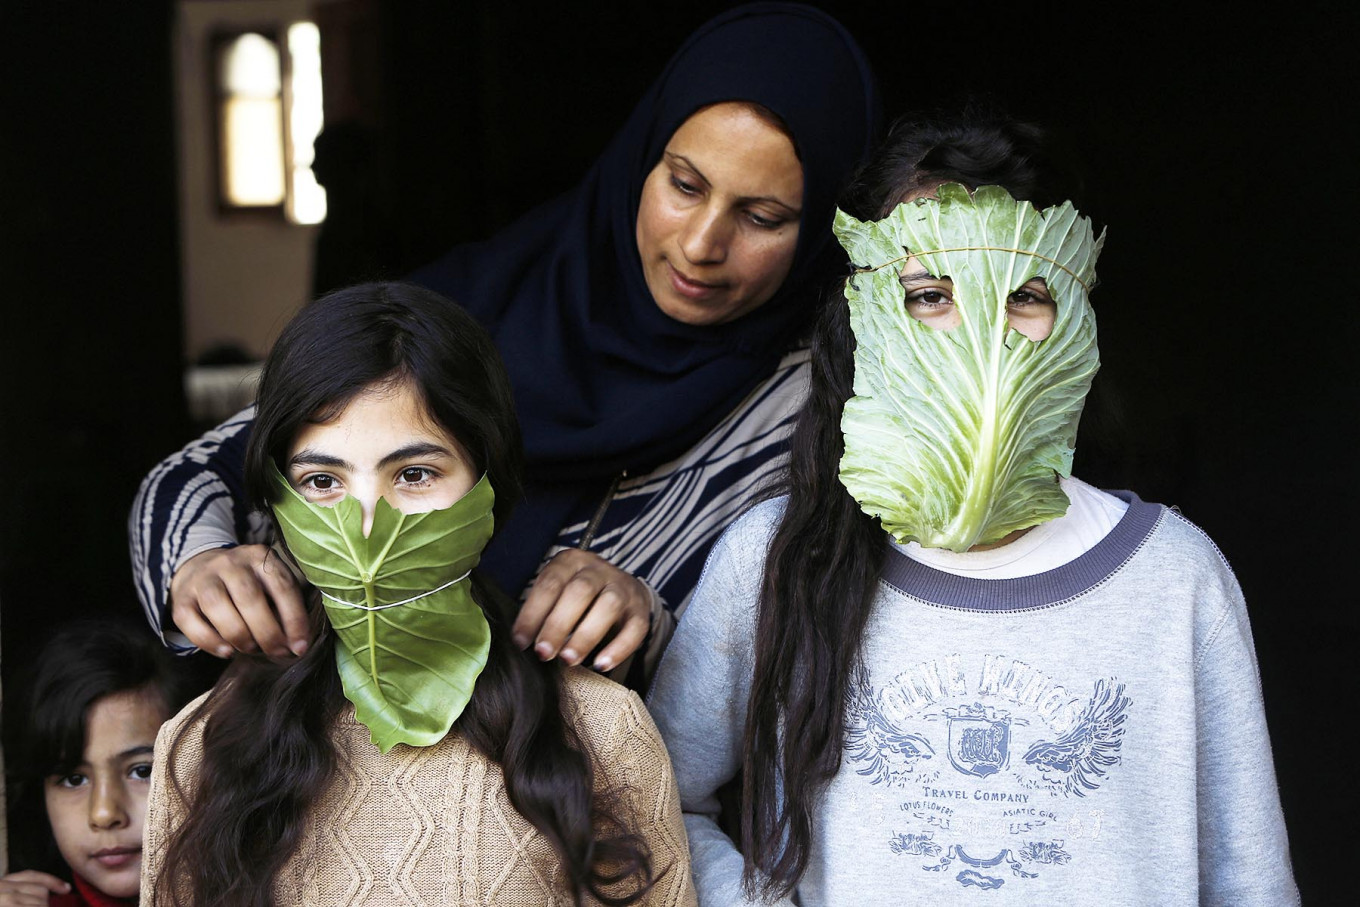 A Palestinian mother entertain her children with makeshift masks made of cabbage as she cooks in Beit Lahia in the northern Gaza Strip on April 16, 2020 amid the coronavirus COVID-19 pandemic. AFP/Mohammed Abed